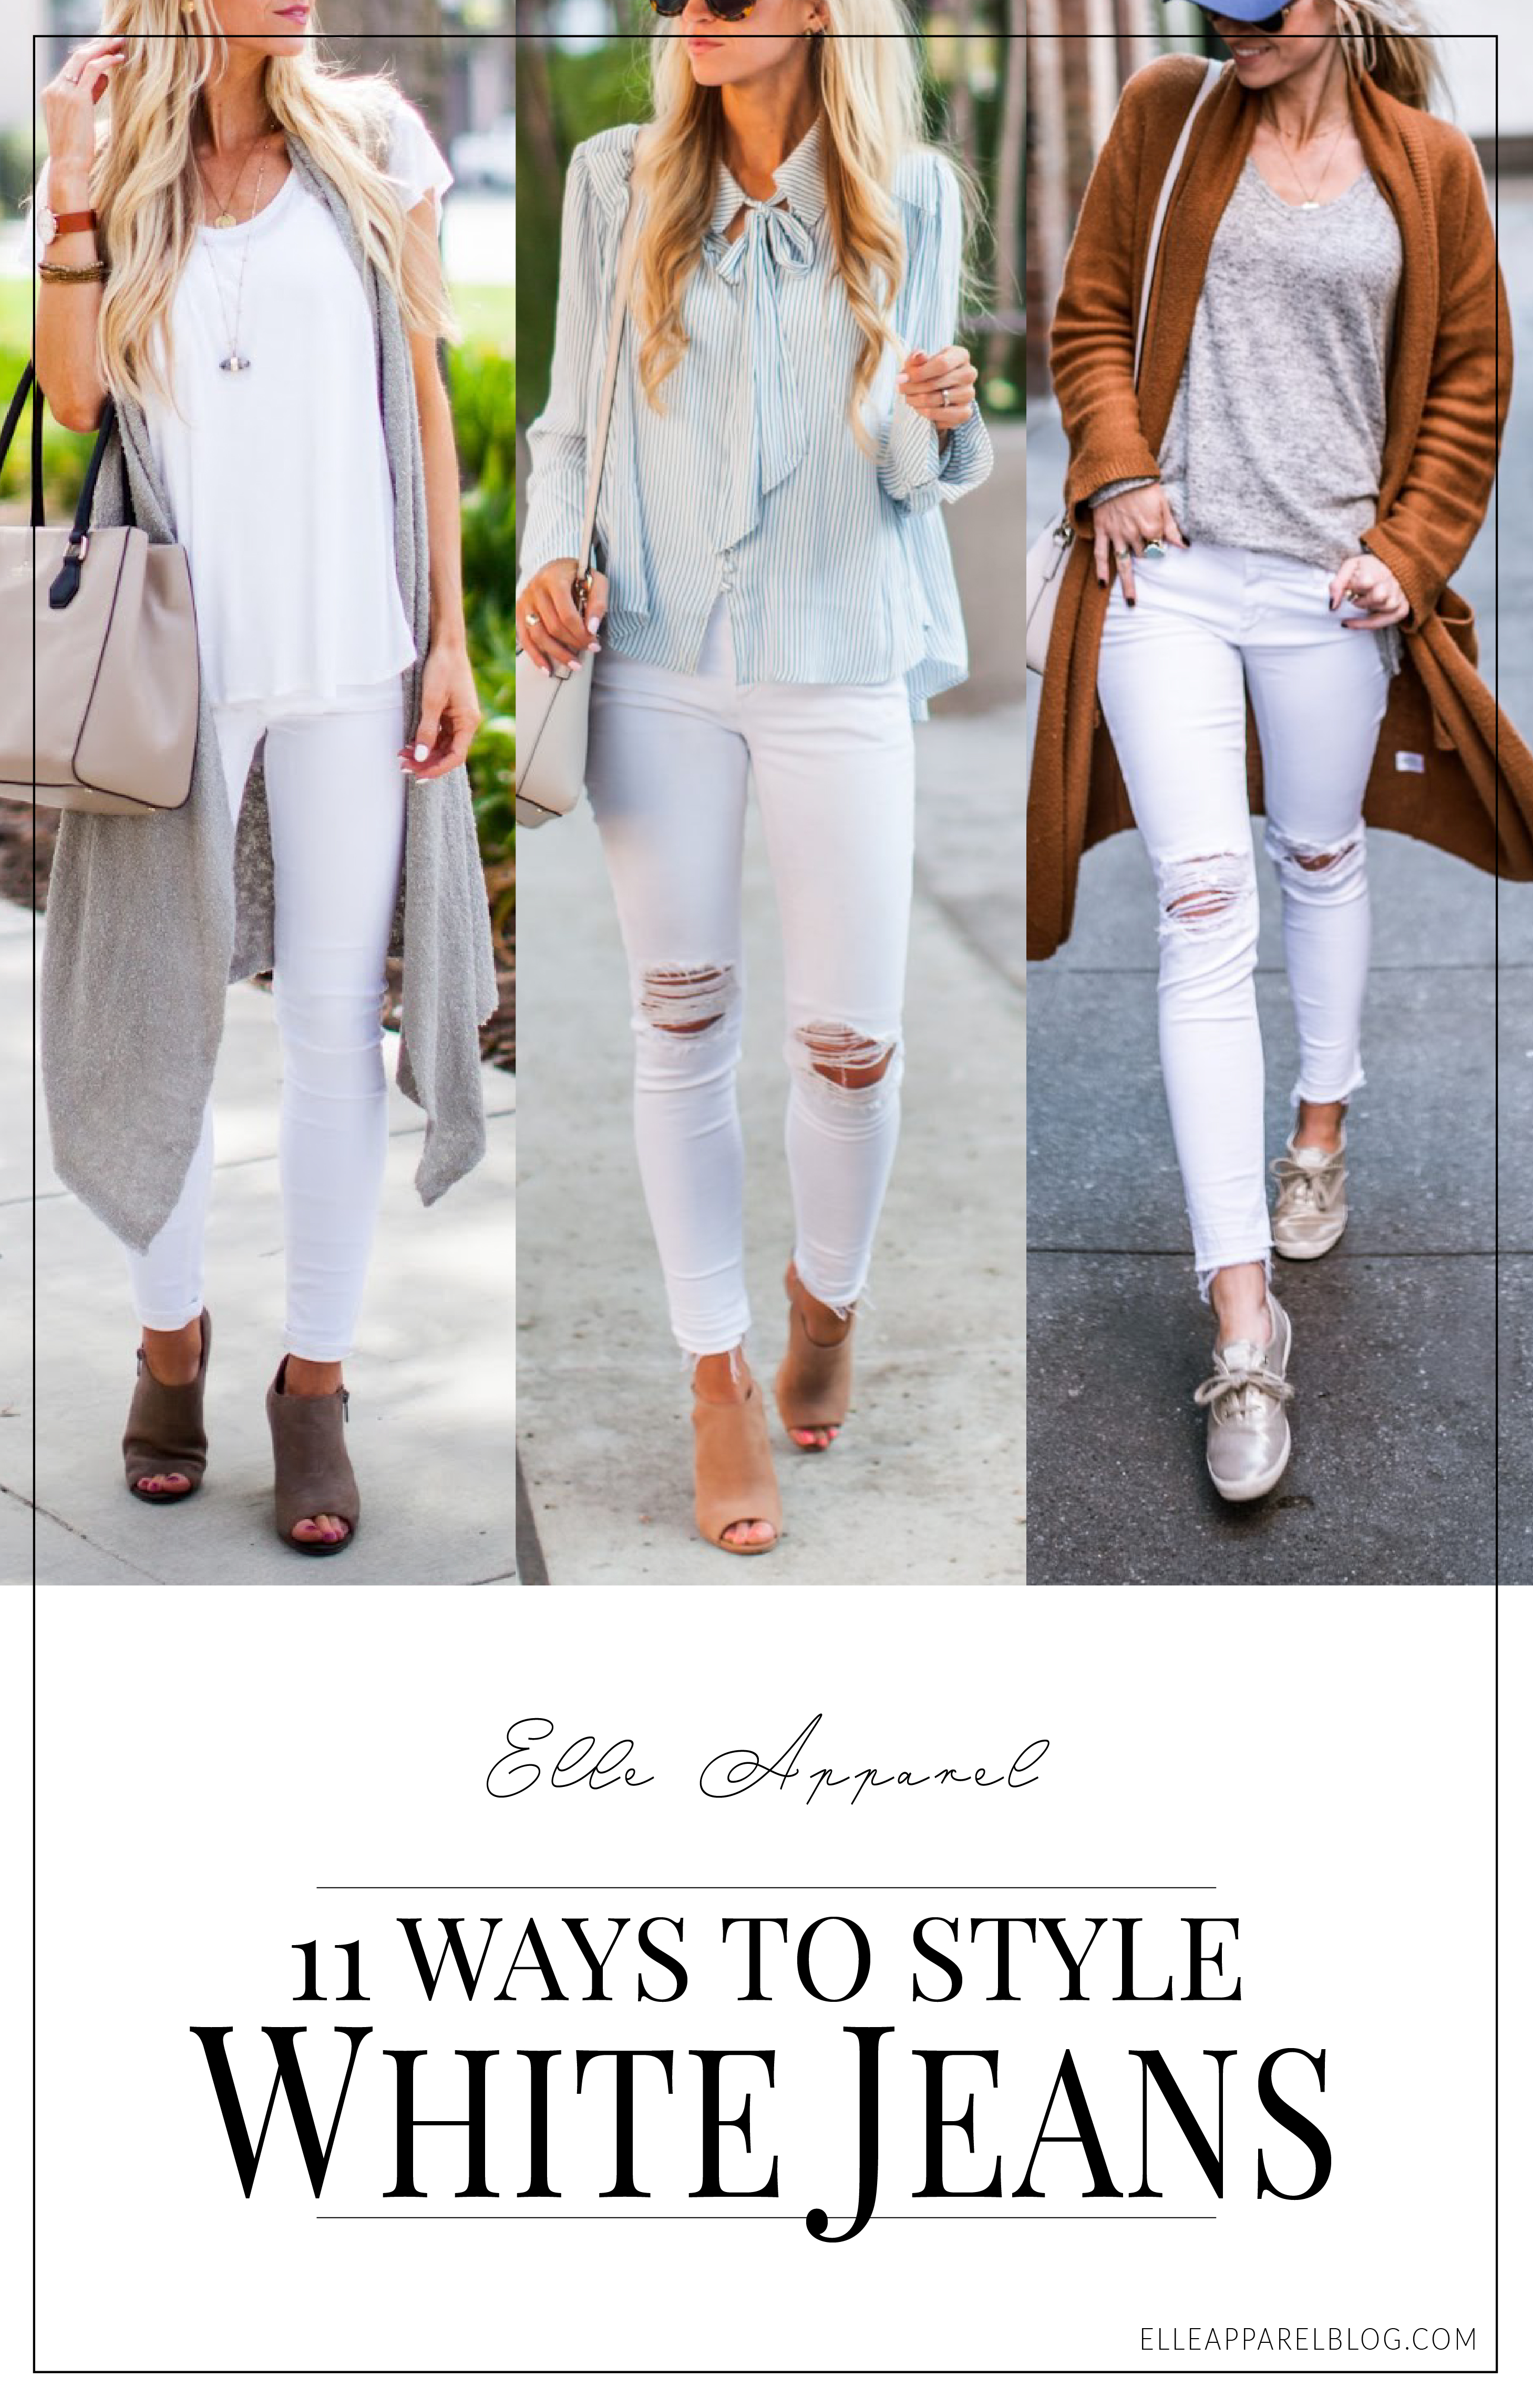 11 ways to style your white jeans this spring.